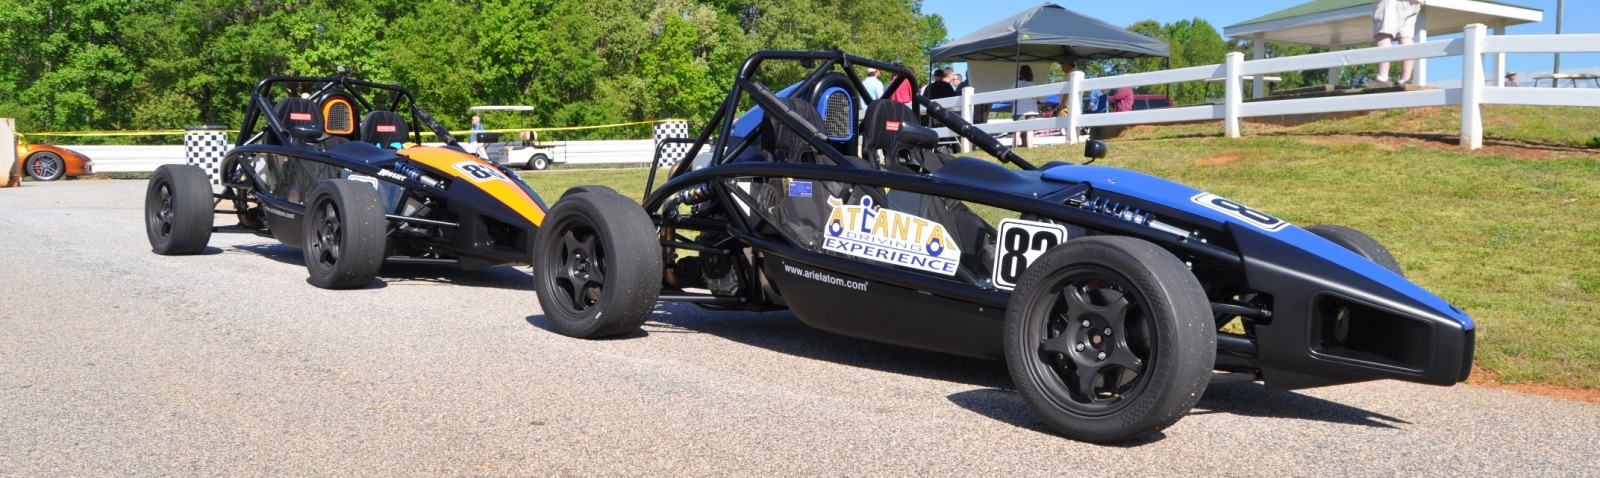 Ariel Atom Duo on Slicks at the Road Atlanta Skidpad for ATL Driving Experience 7